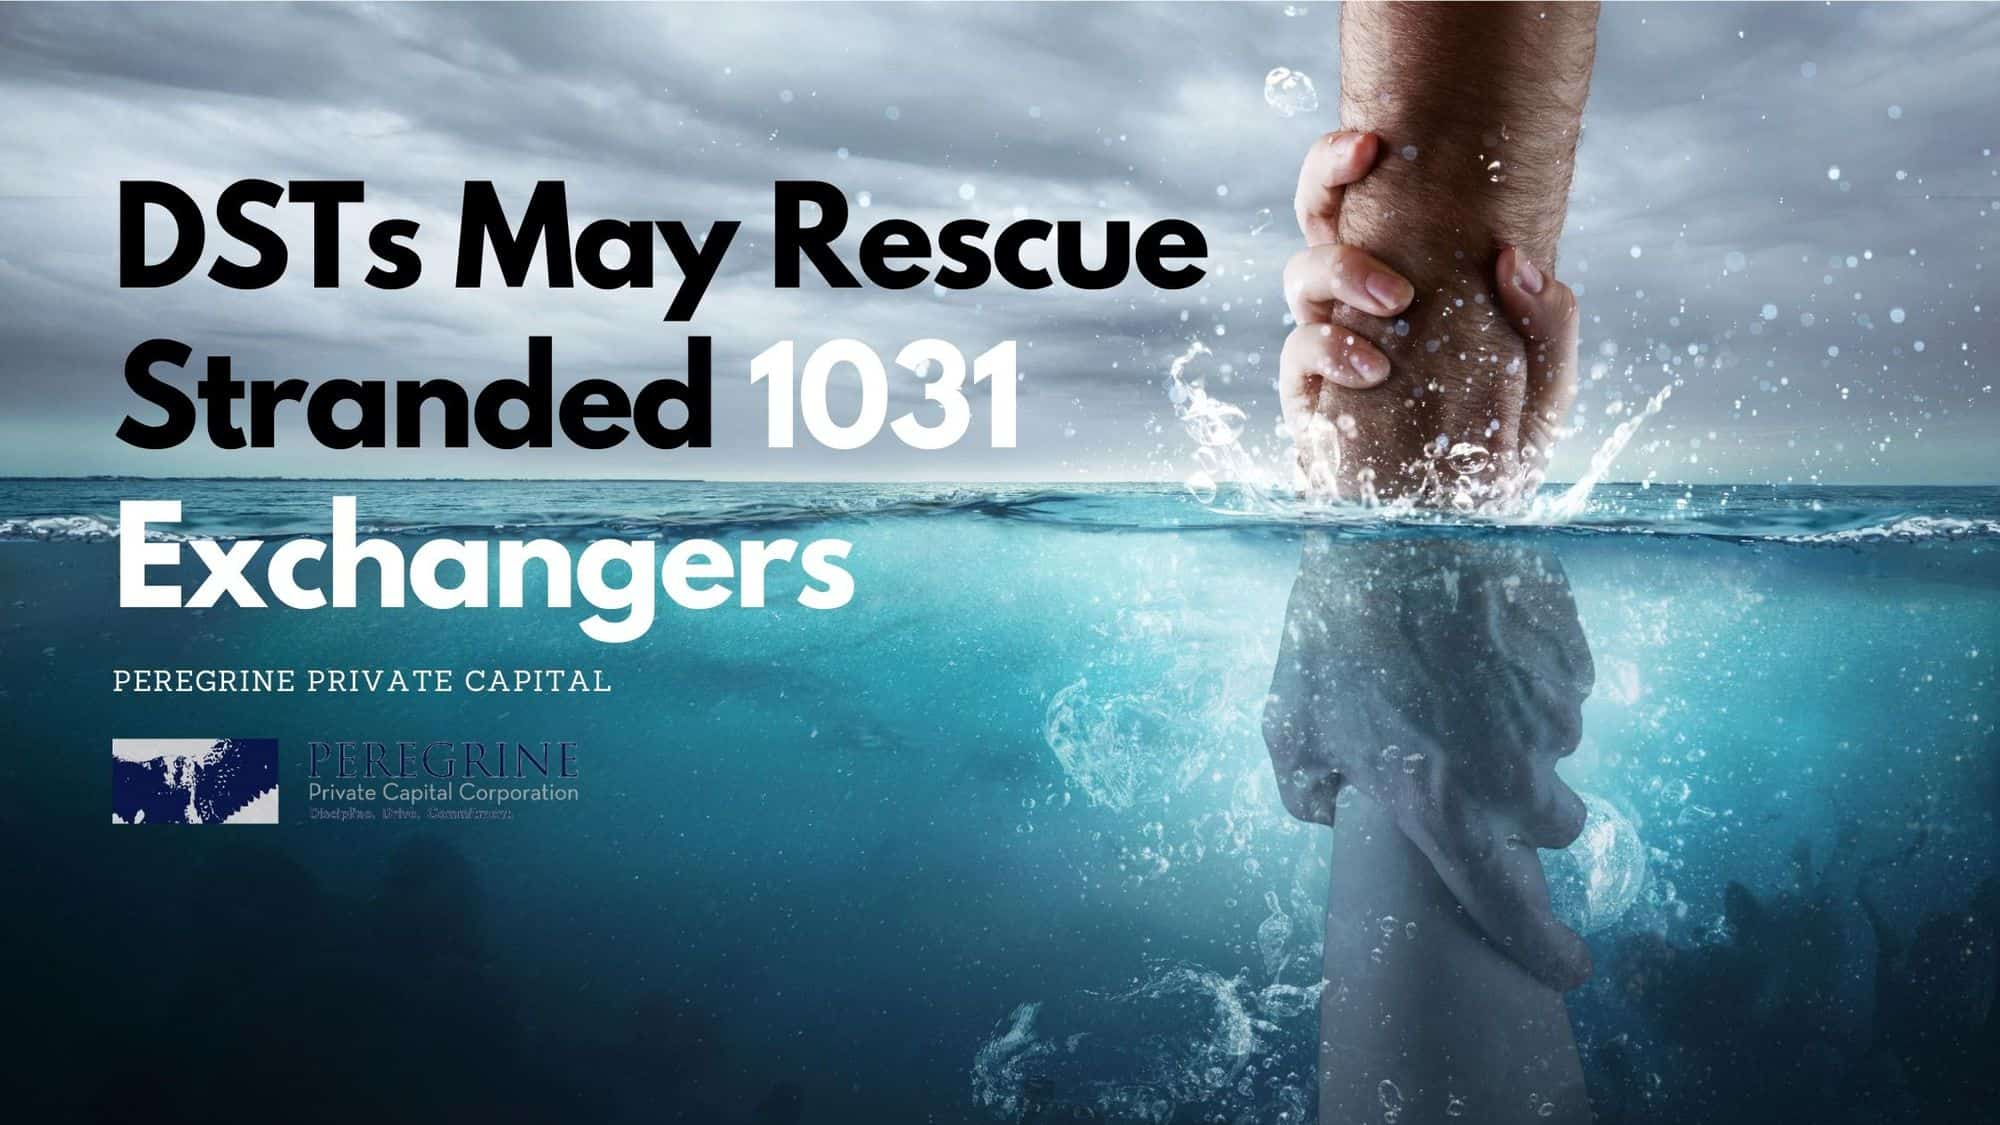 DST's save stranded 1031 exchangers